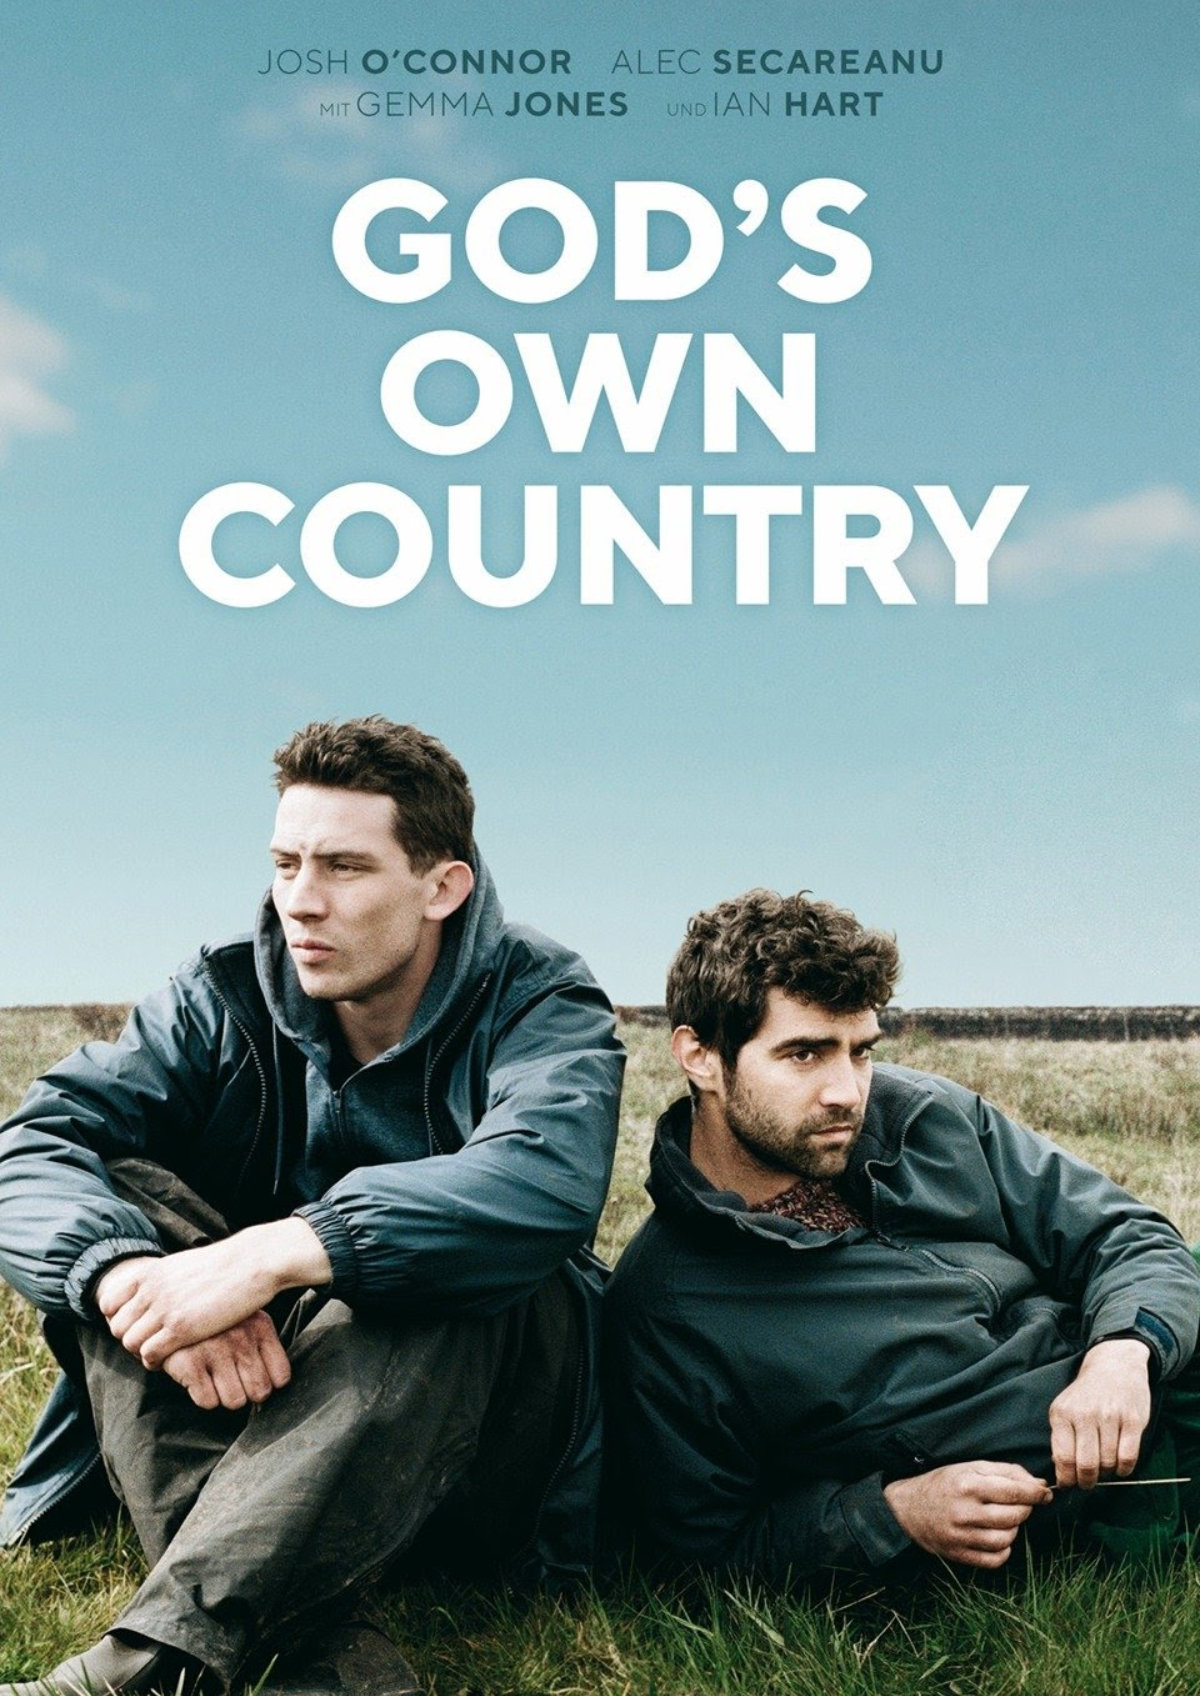 'God's Own Country' movie poster